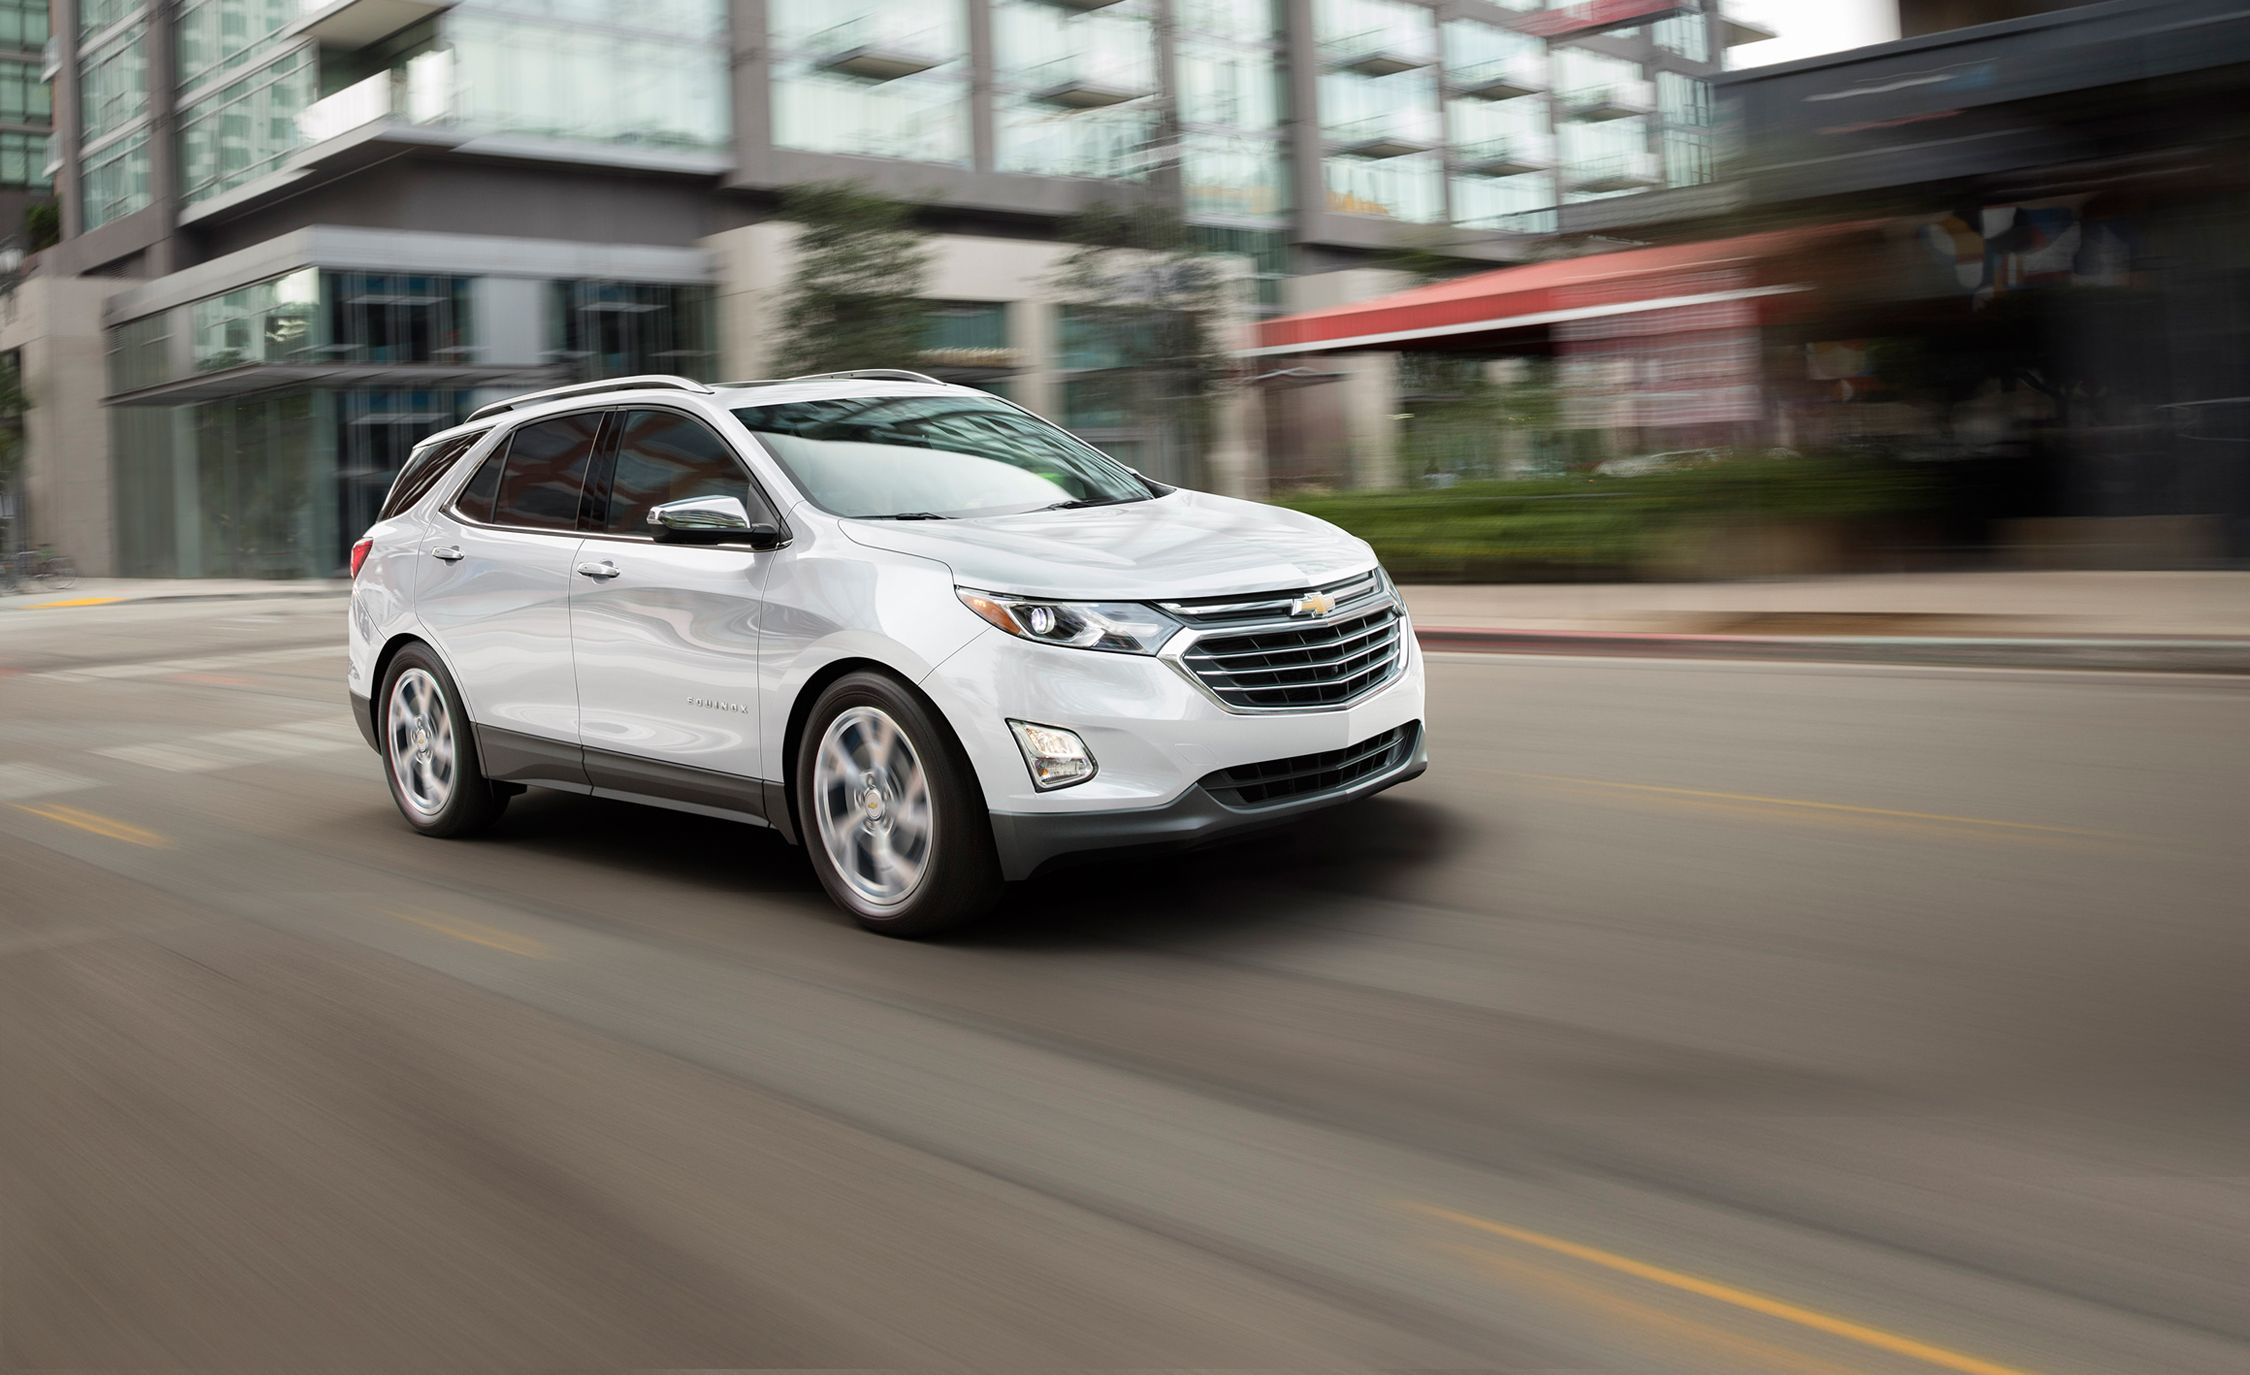 2018 chevrolet equinox diesel first drive review car and driver photo 689665 s original